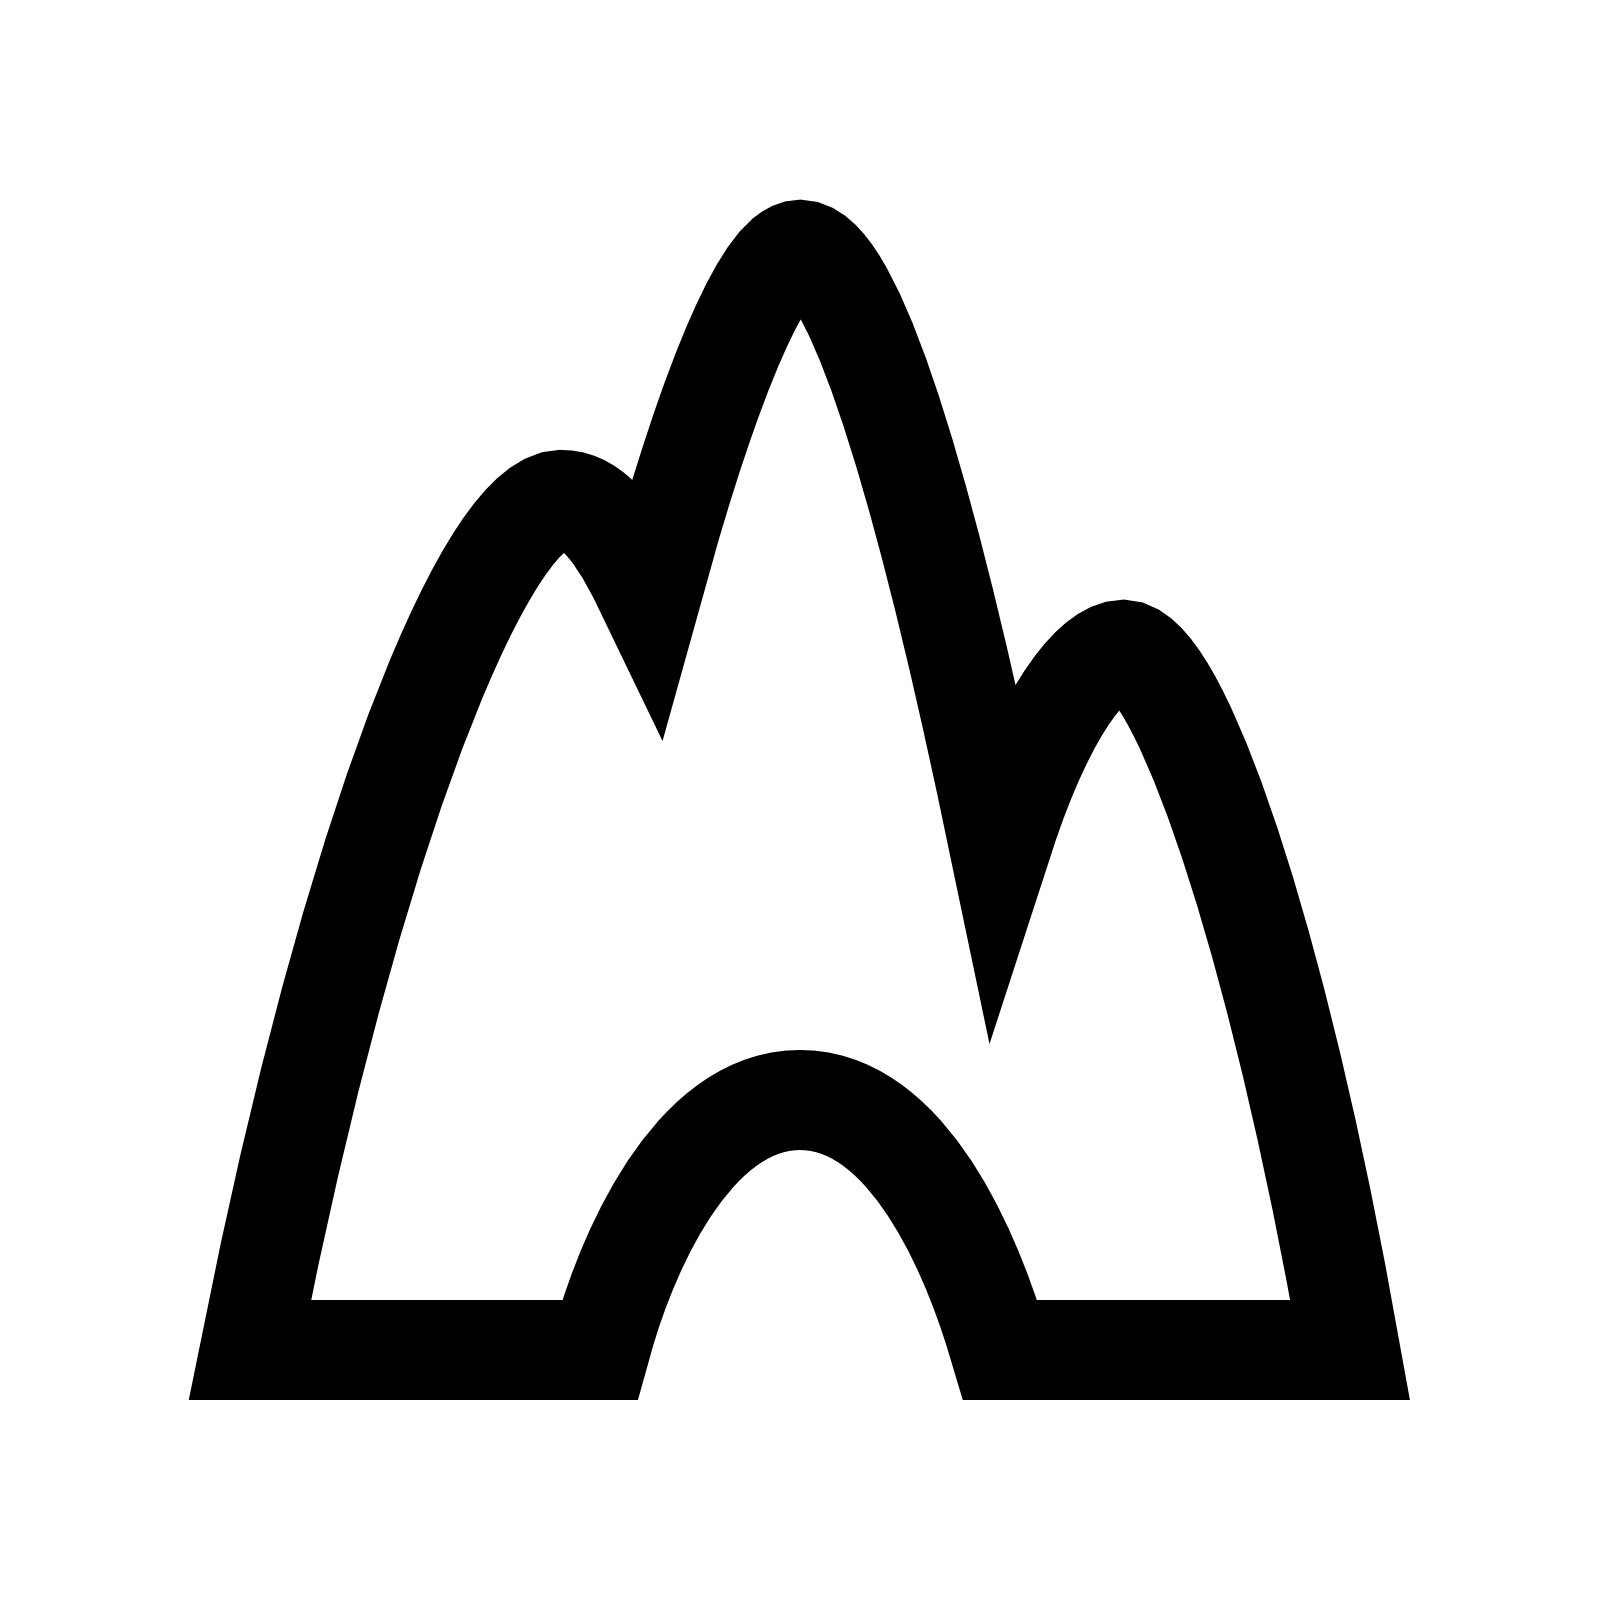 Cave icon flat